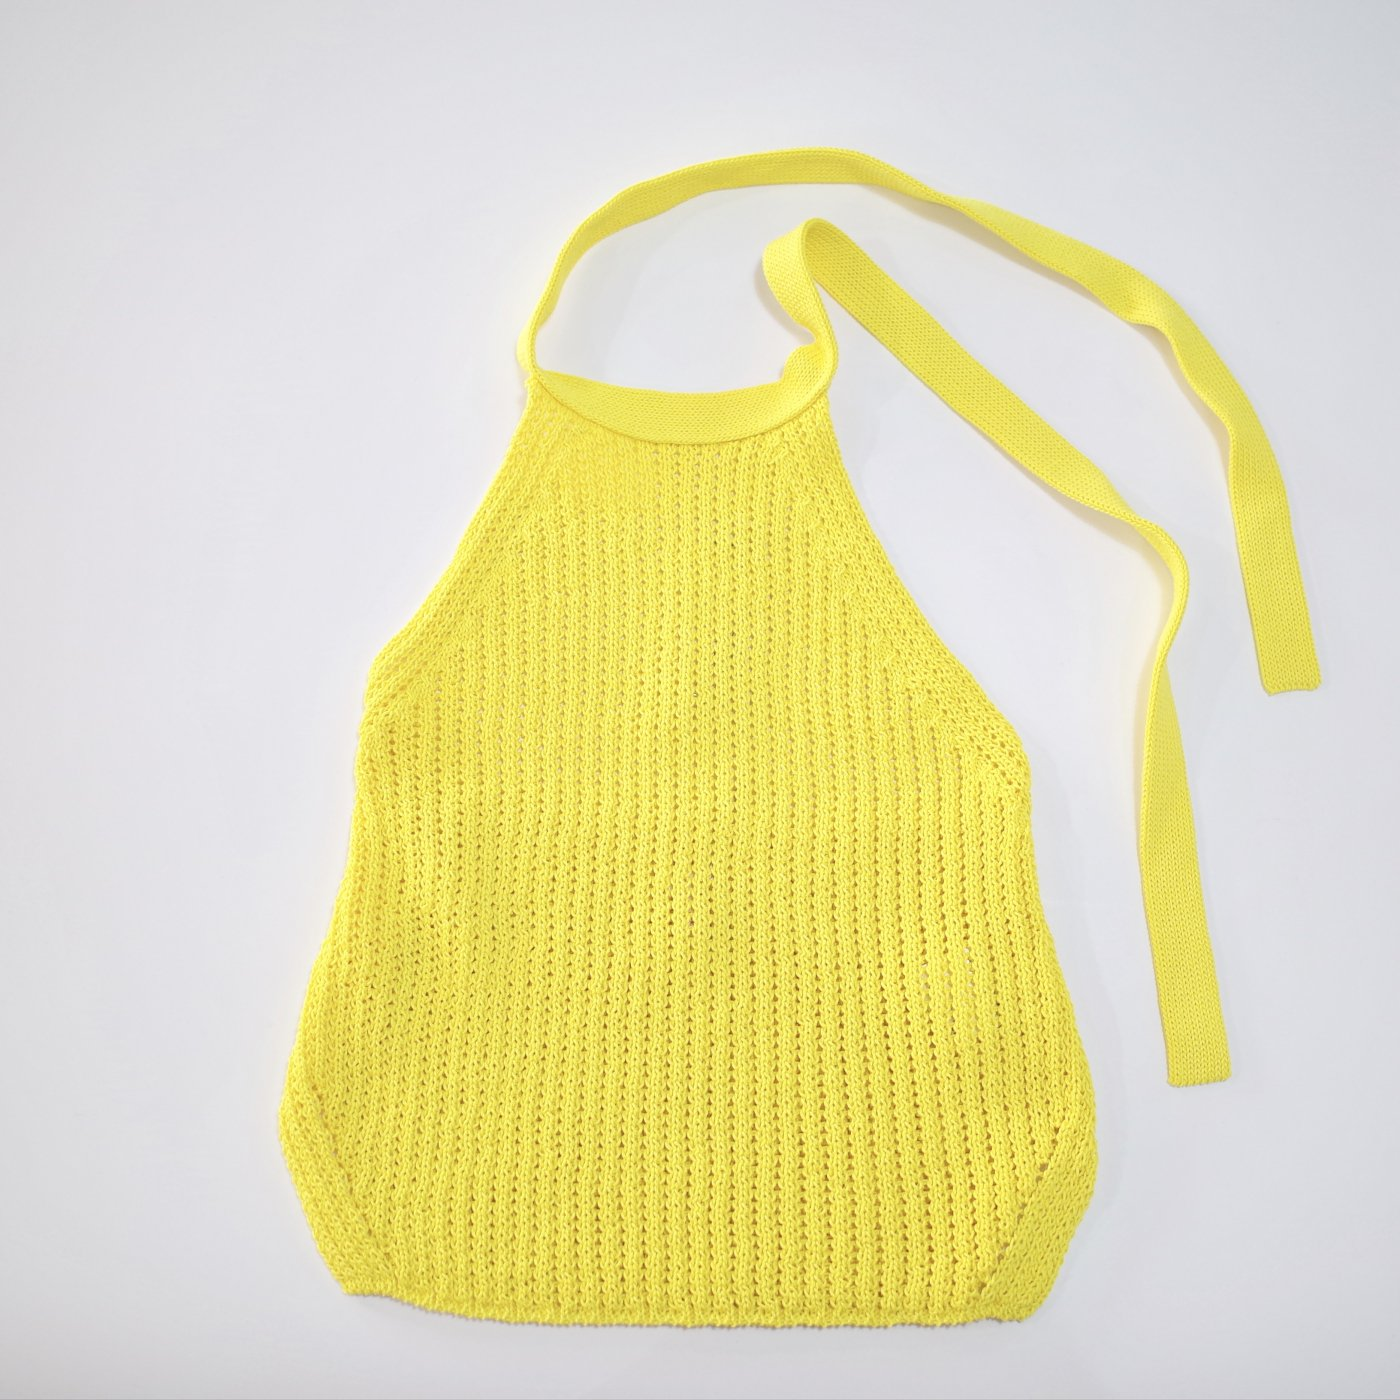 babaco 2018SS -loose knitted halter neck top/yellow-women's